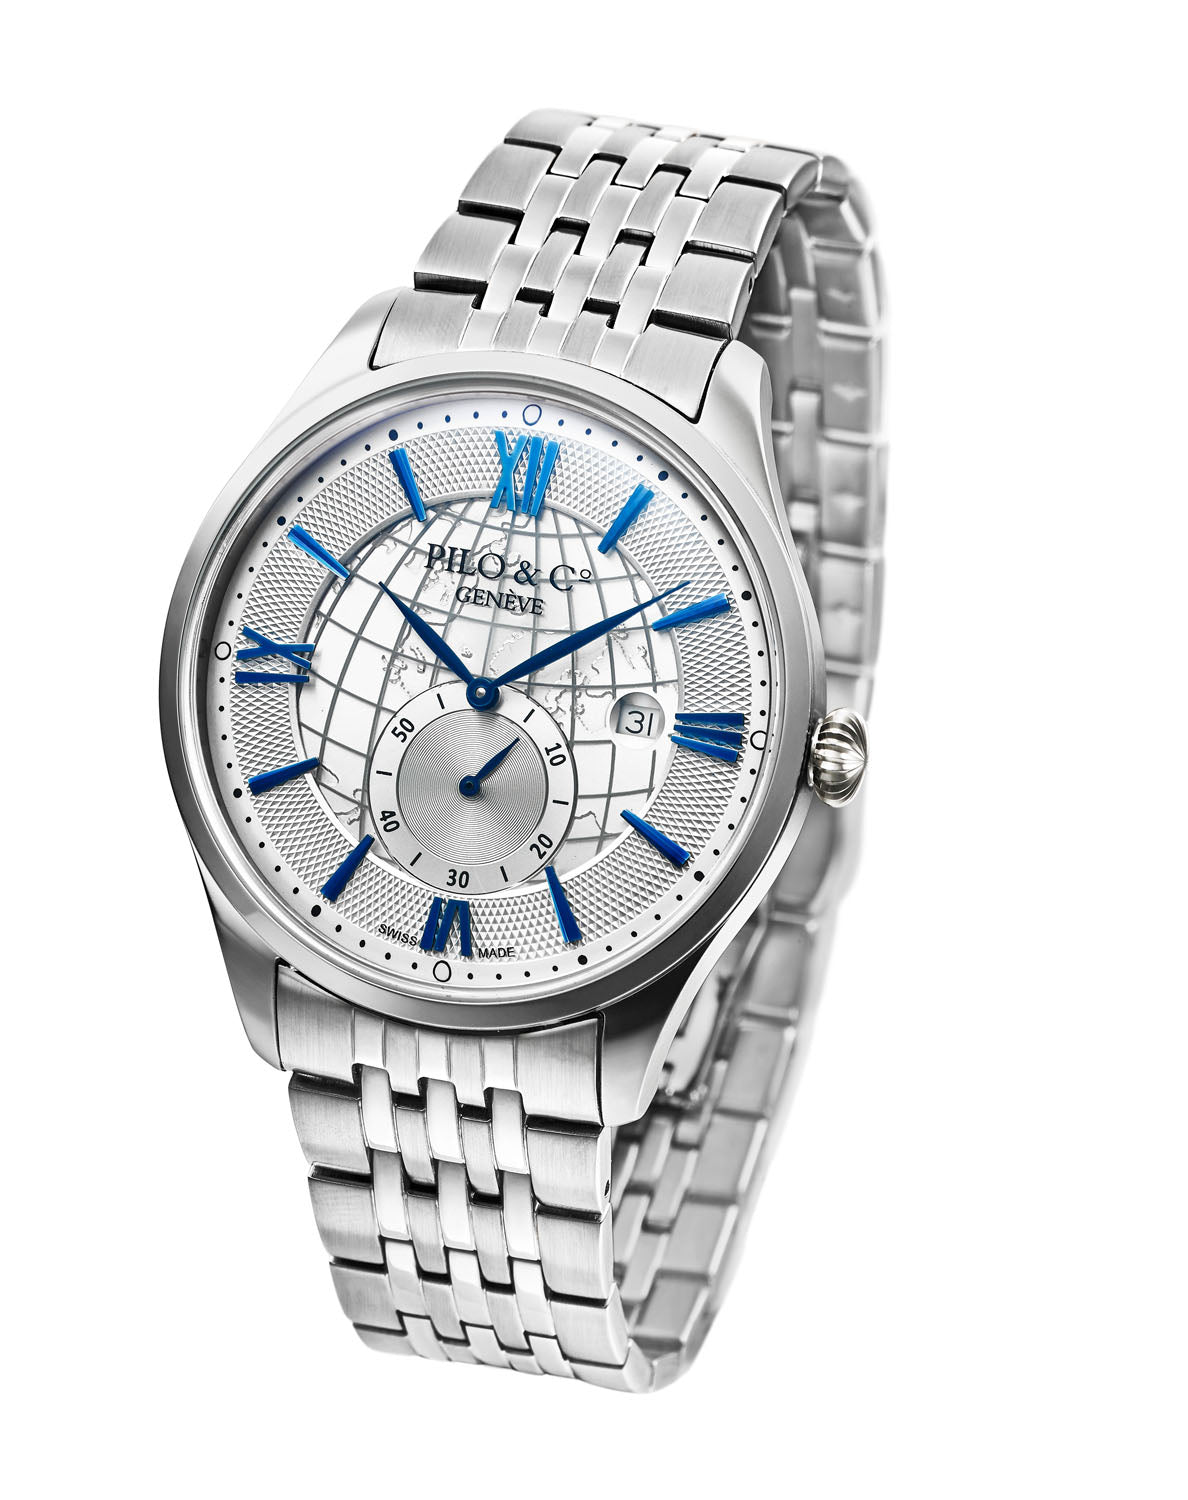 Pilo & Co Geneva Swiss Quartz Montecristo Men's Watch collection Silver Steel Bracelet